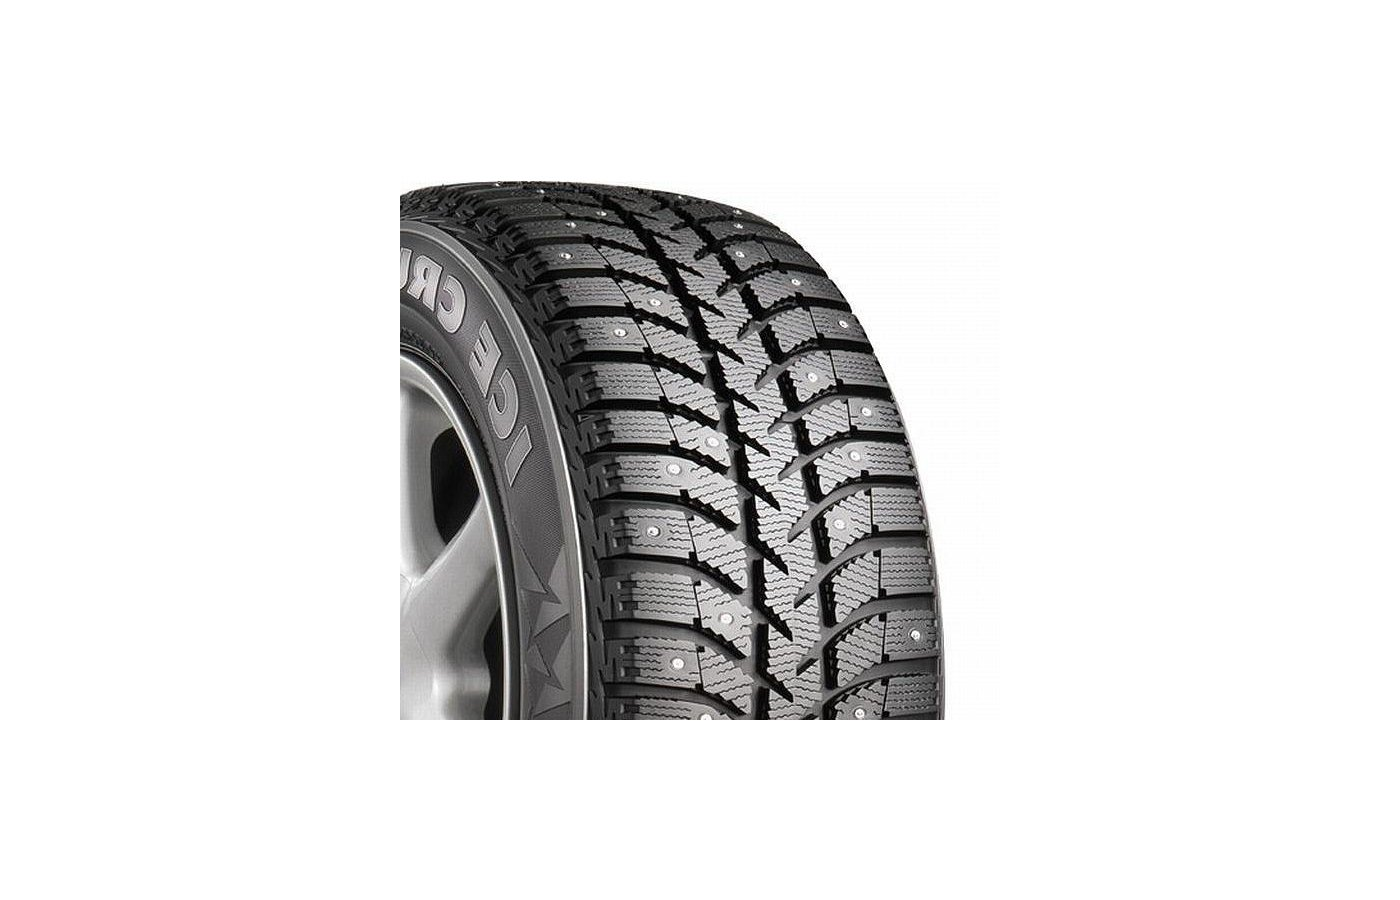 Шина Bridgestone Ice Cruiser 7000 285/60 R18 TL 116T шип